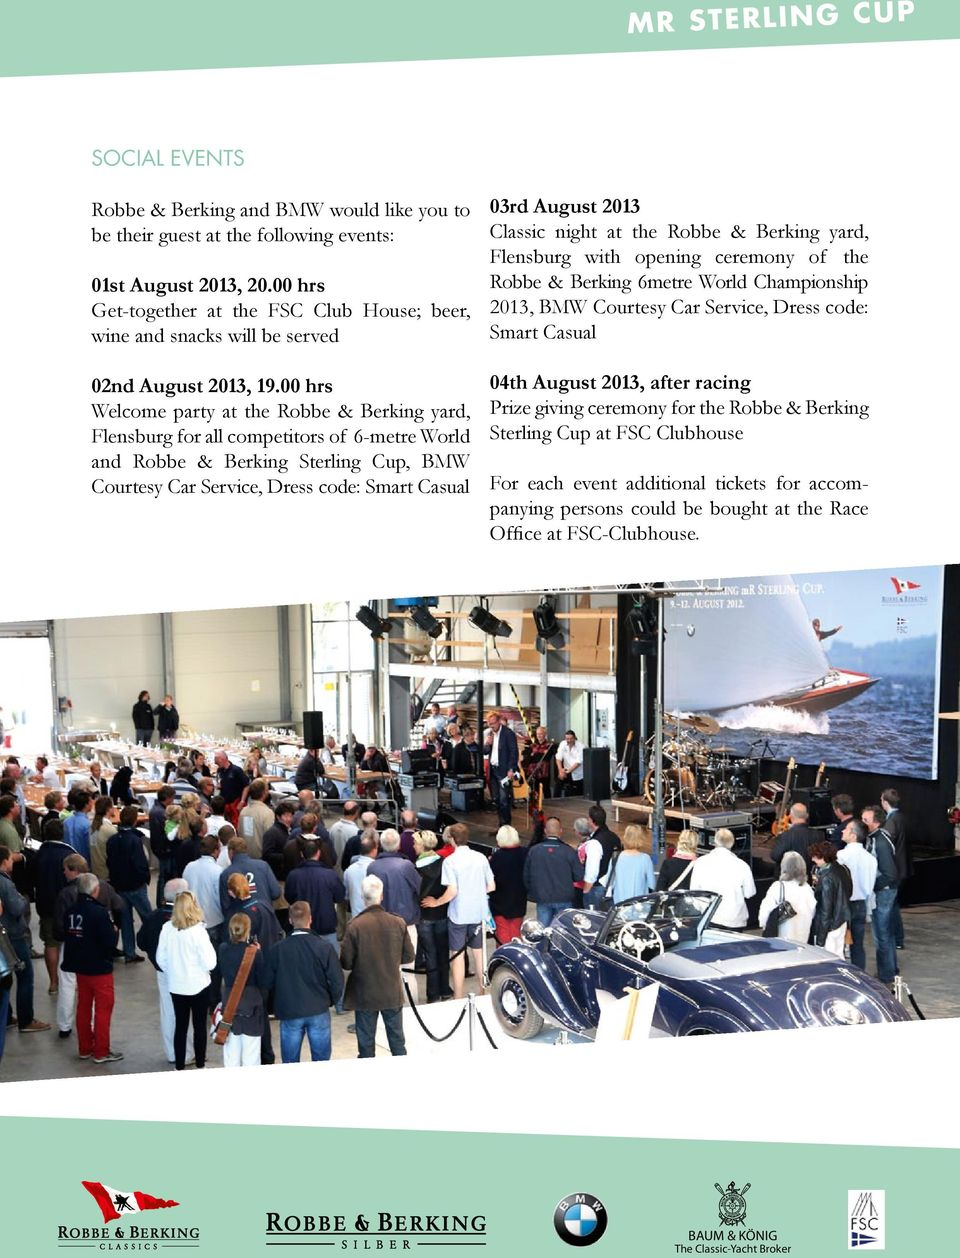 00 hrs Welcome party at the Robbe & Berking yard, Flensburg for all competitors of 6-metre World and Robbe & Berking Sterling Cup, BMW Courtesy Car Service, Dress code: Smart Casual 03rd August 2013